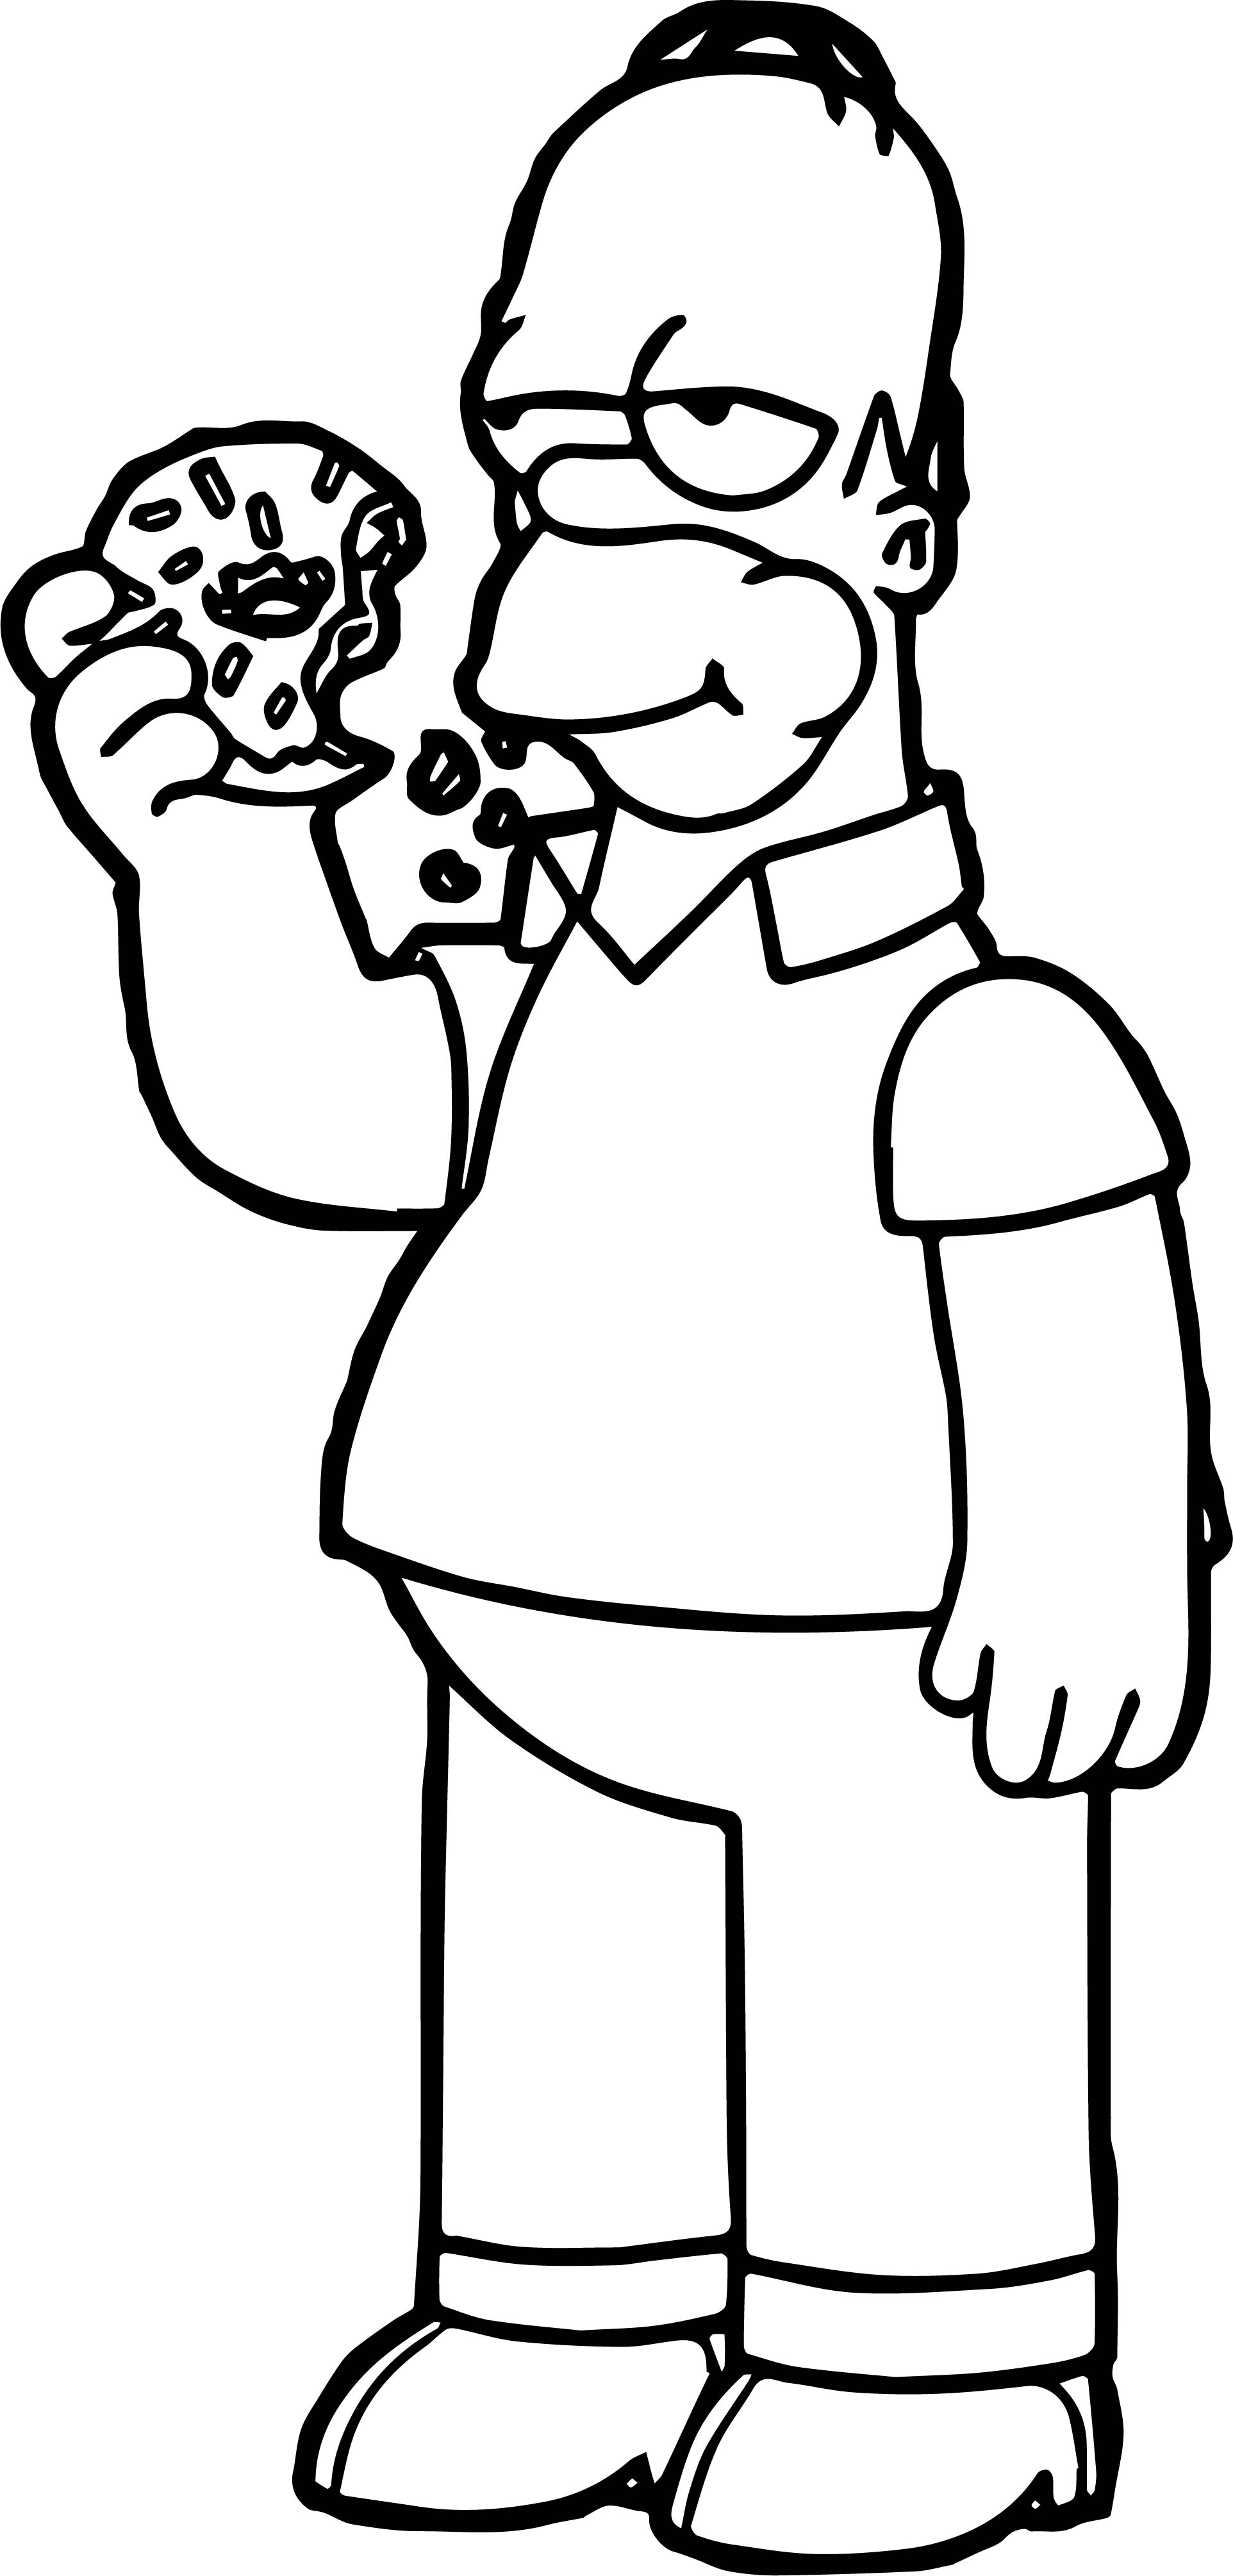 Homer Simpson Eating Donut Coloring Page | Wecoloringpage.com